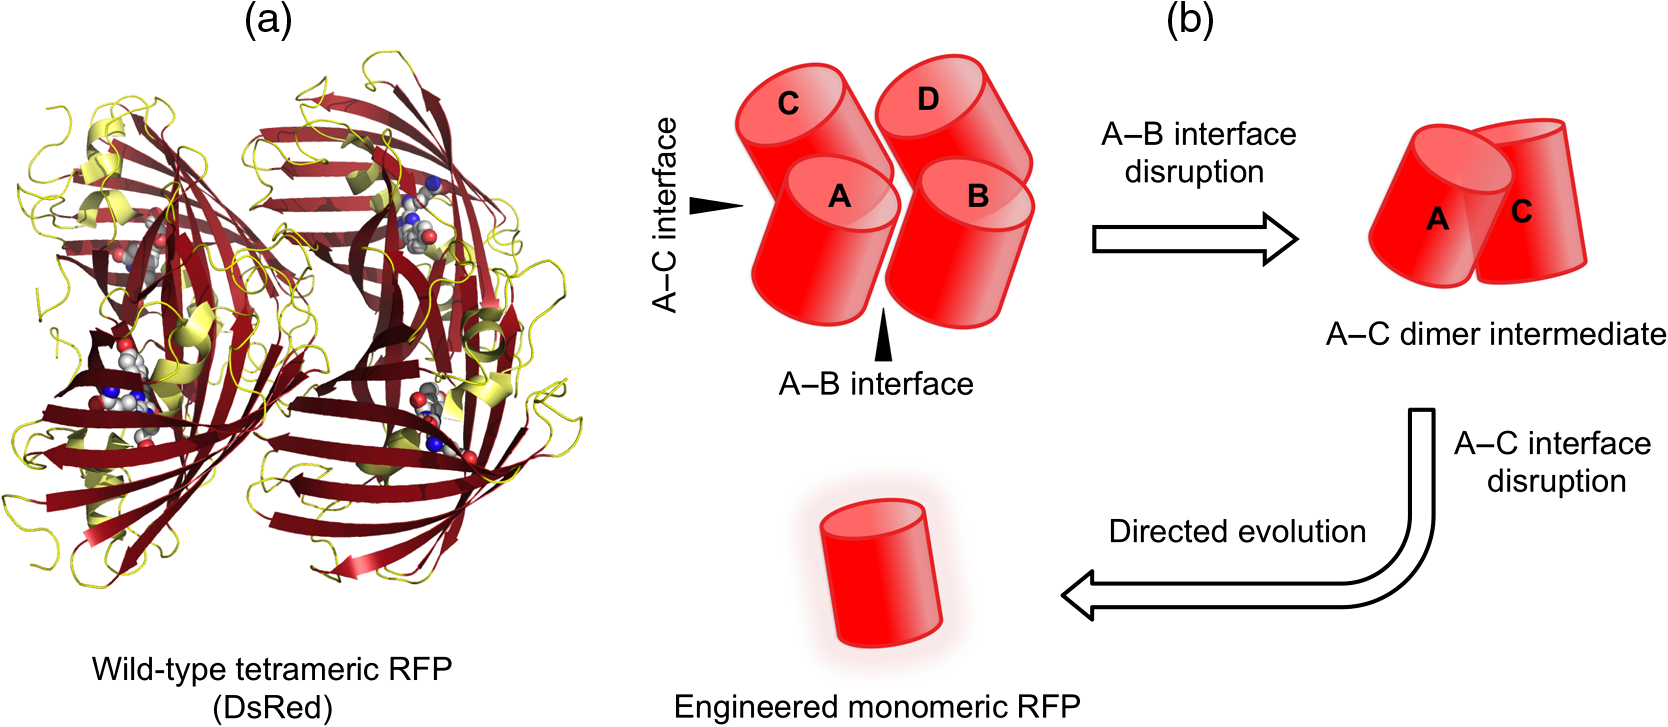 Red fluorescent proteins (RFPs) and RFP-based biosensors for